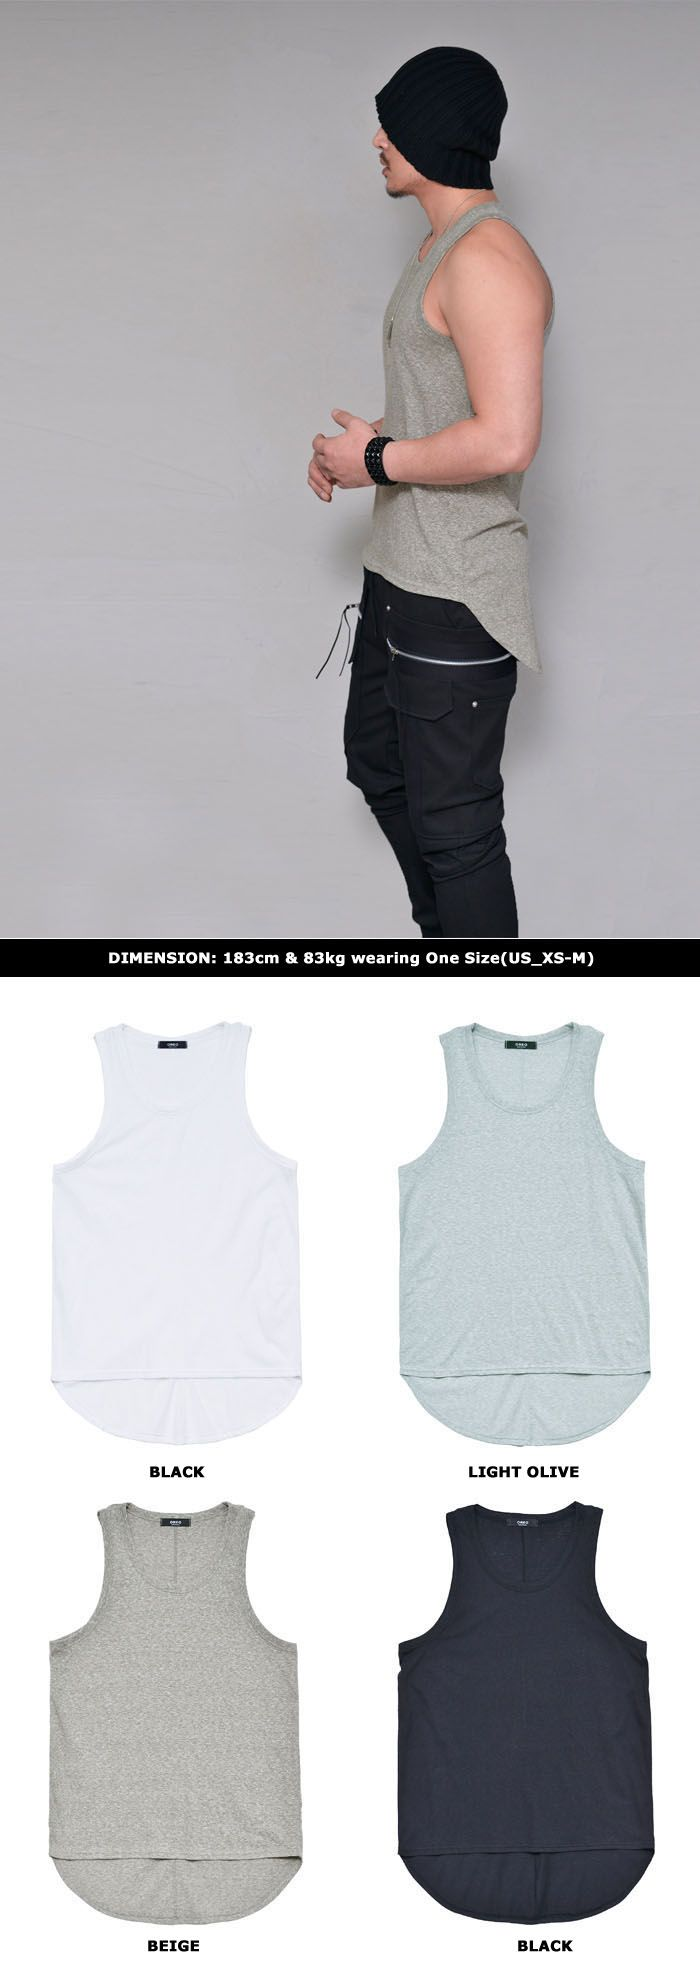 Marled Unbalance Singlet-Tank 181 by Guylook.com Great quality marled soft cotton with comfort & flexibility Easy fit & flattering slim silhouette Unbalance length Machine-wash cold. Hang-dry in the shade